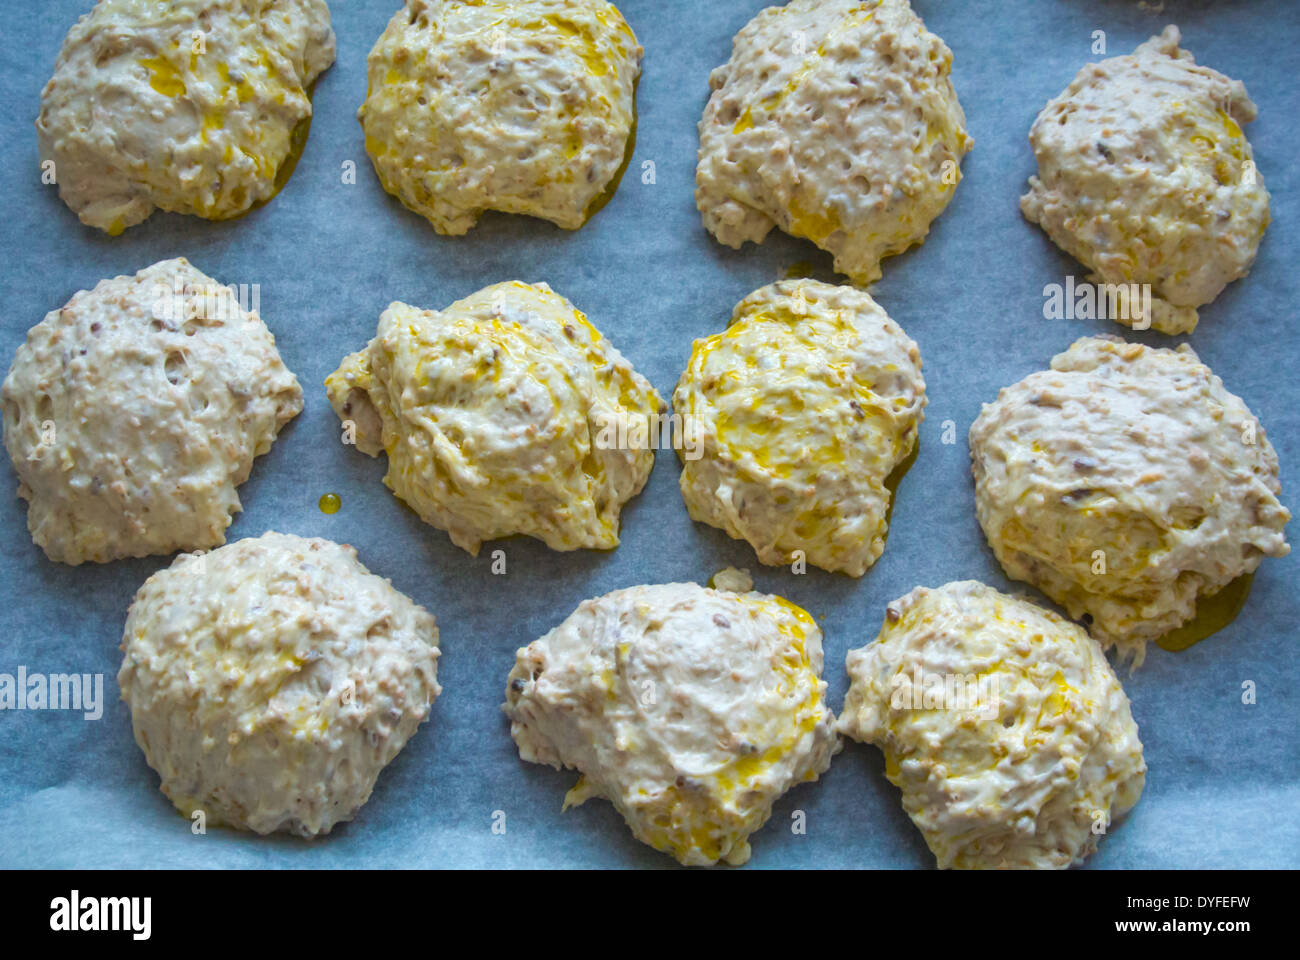 Raw dough bread rolls before going into the oven, Finland, Europe - Stock Image